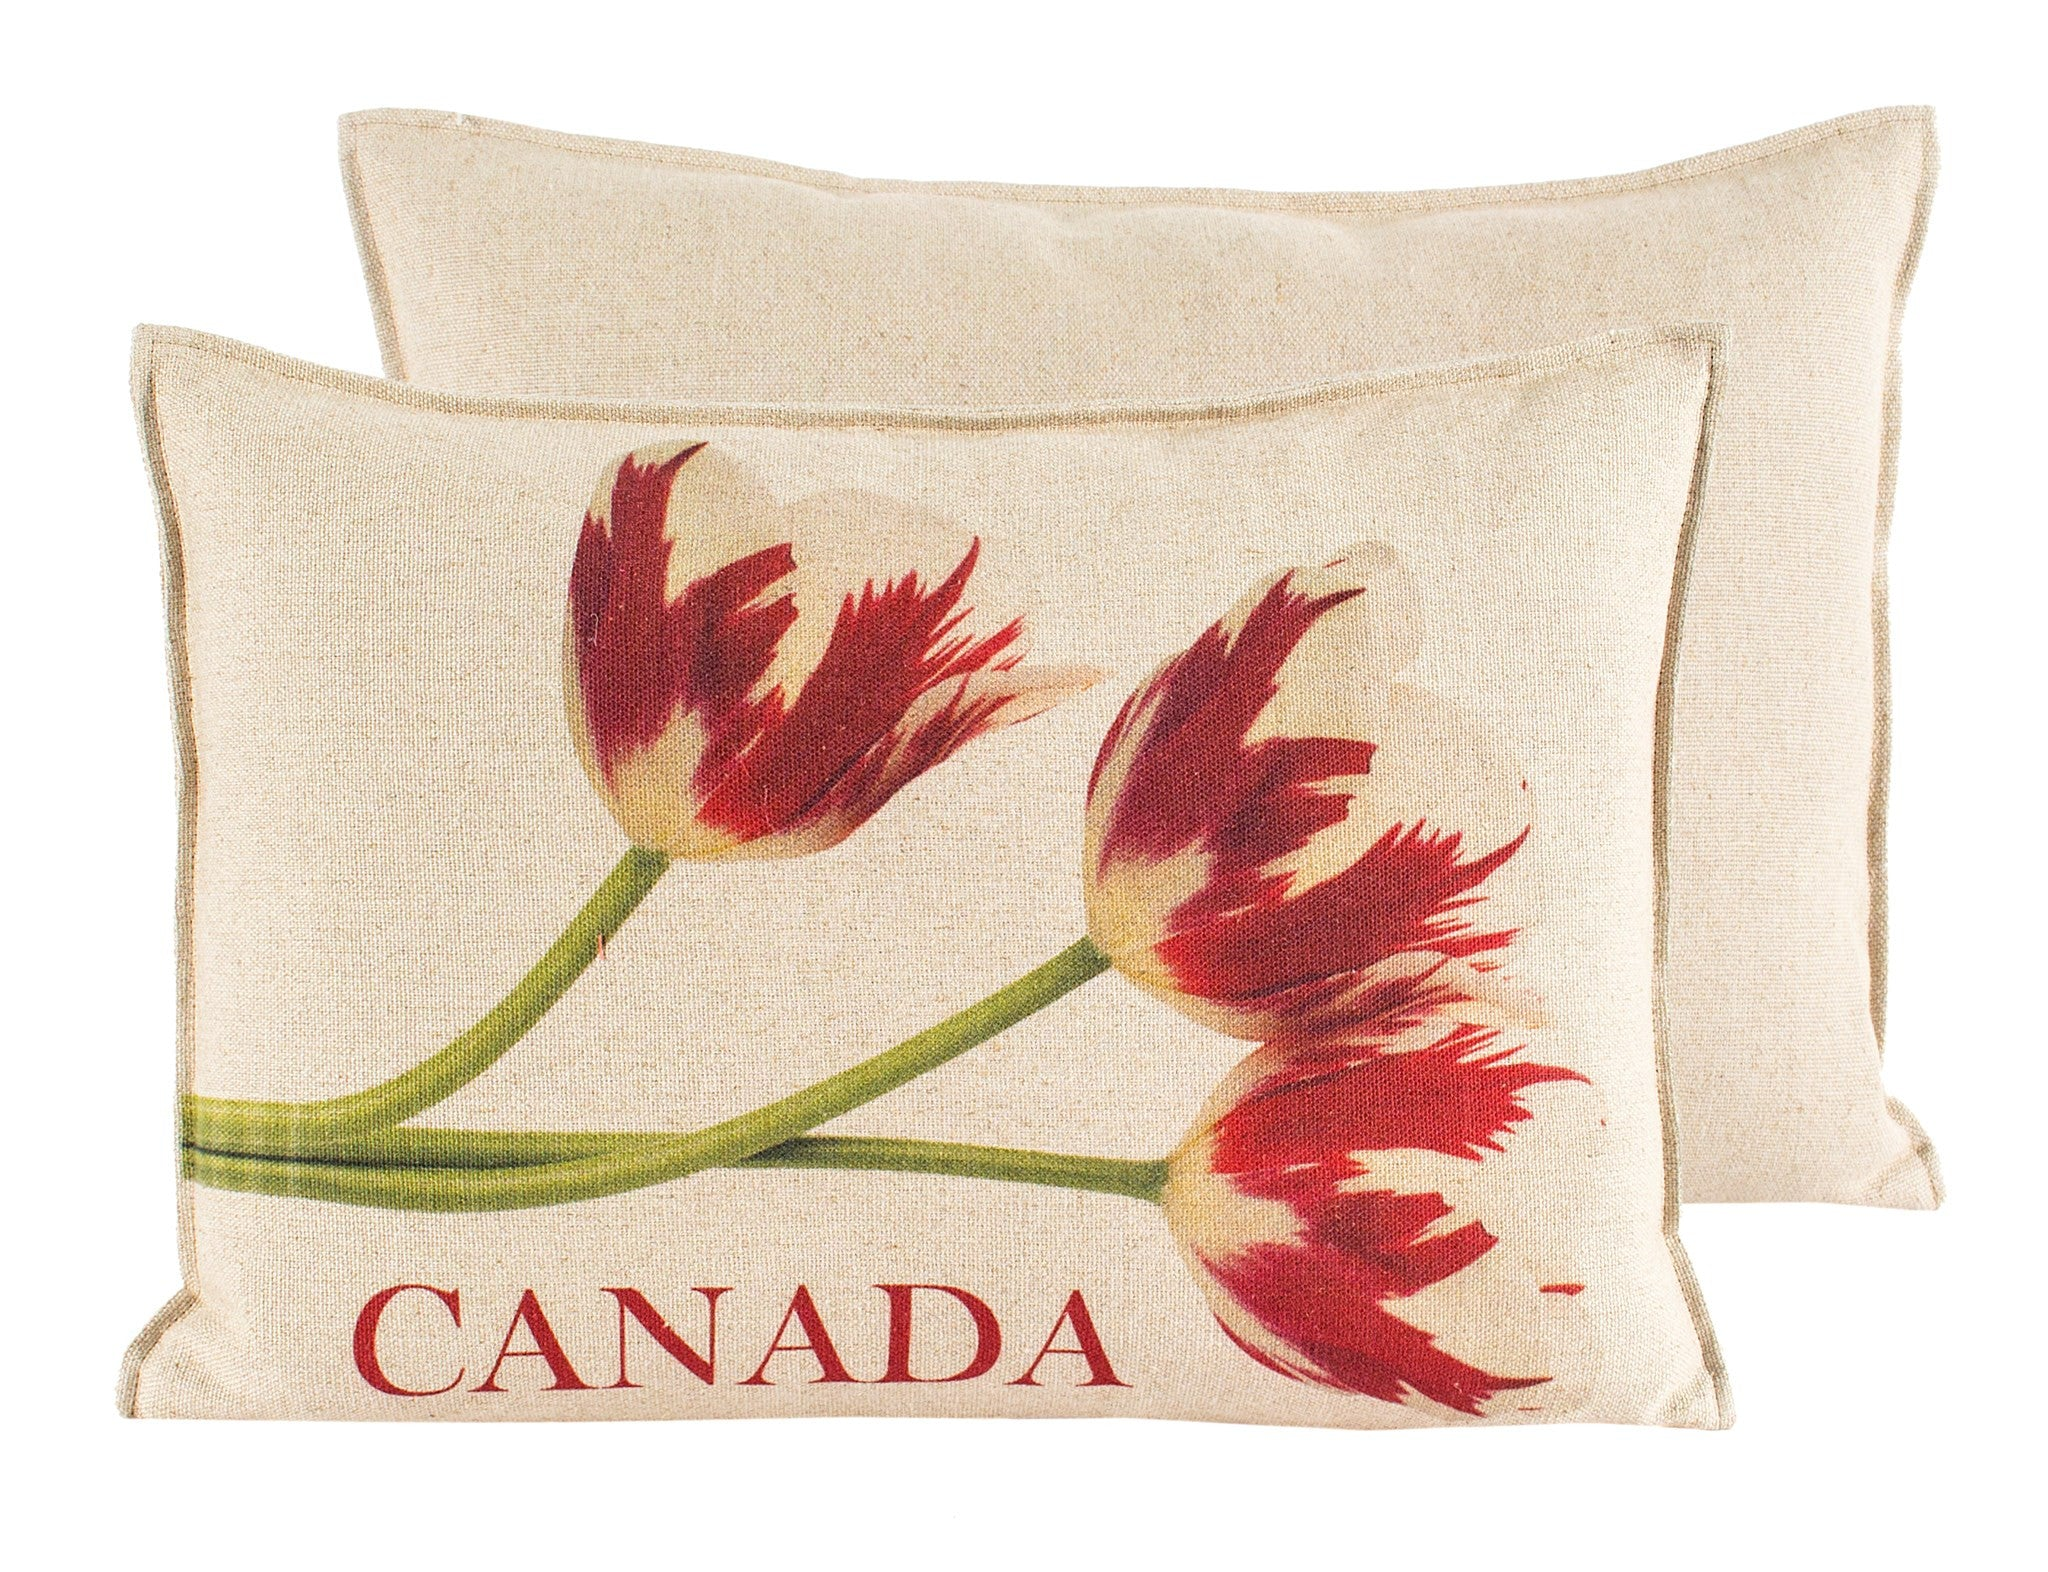 A Canadian Pillow with a Story